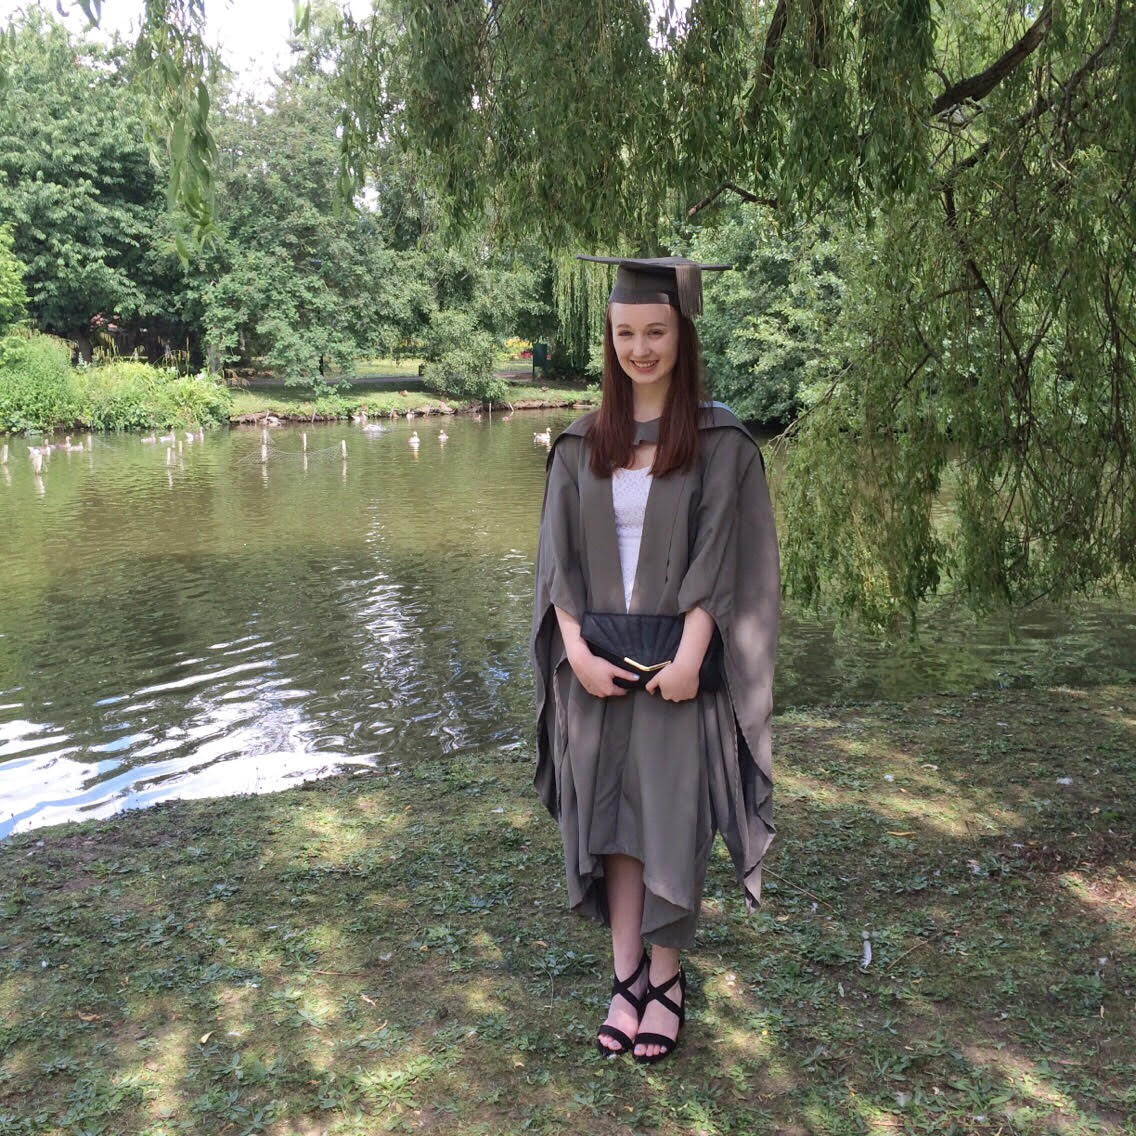 pippa wearing white dress with graduation cap and gown in grey, stood up outdoors with trees and river in background, holding black clutch bag and smiling